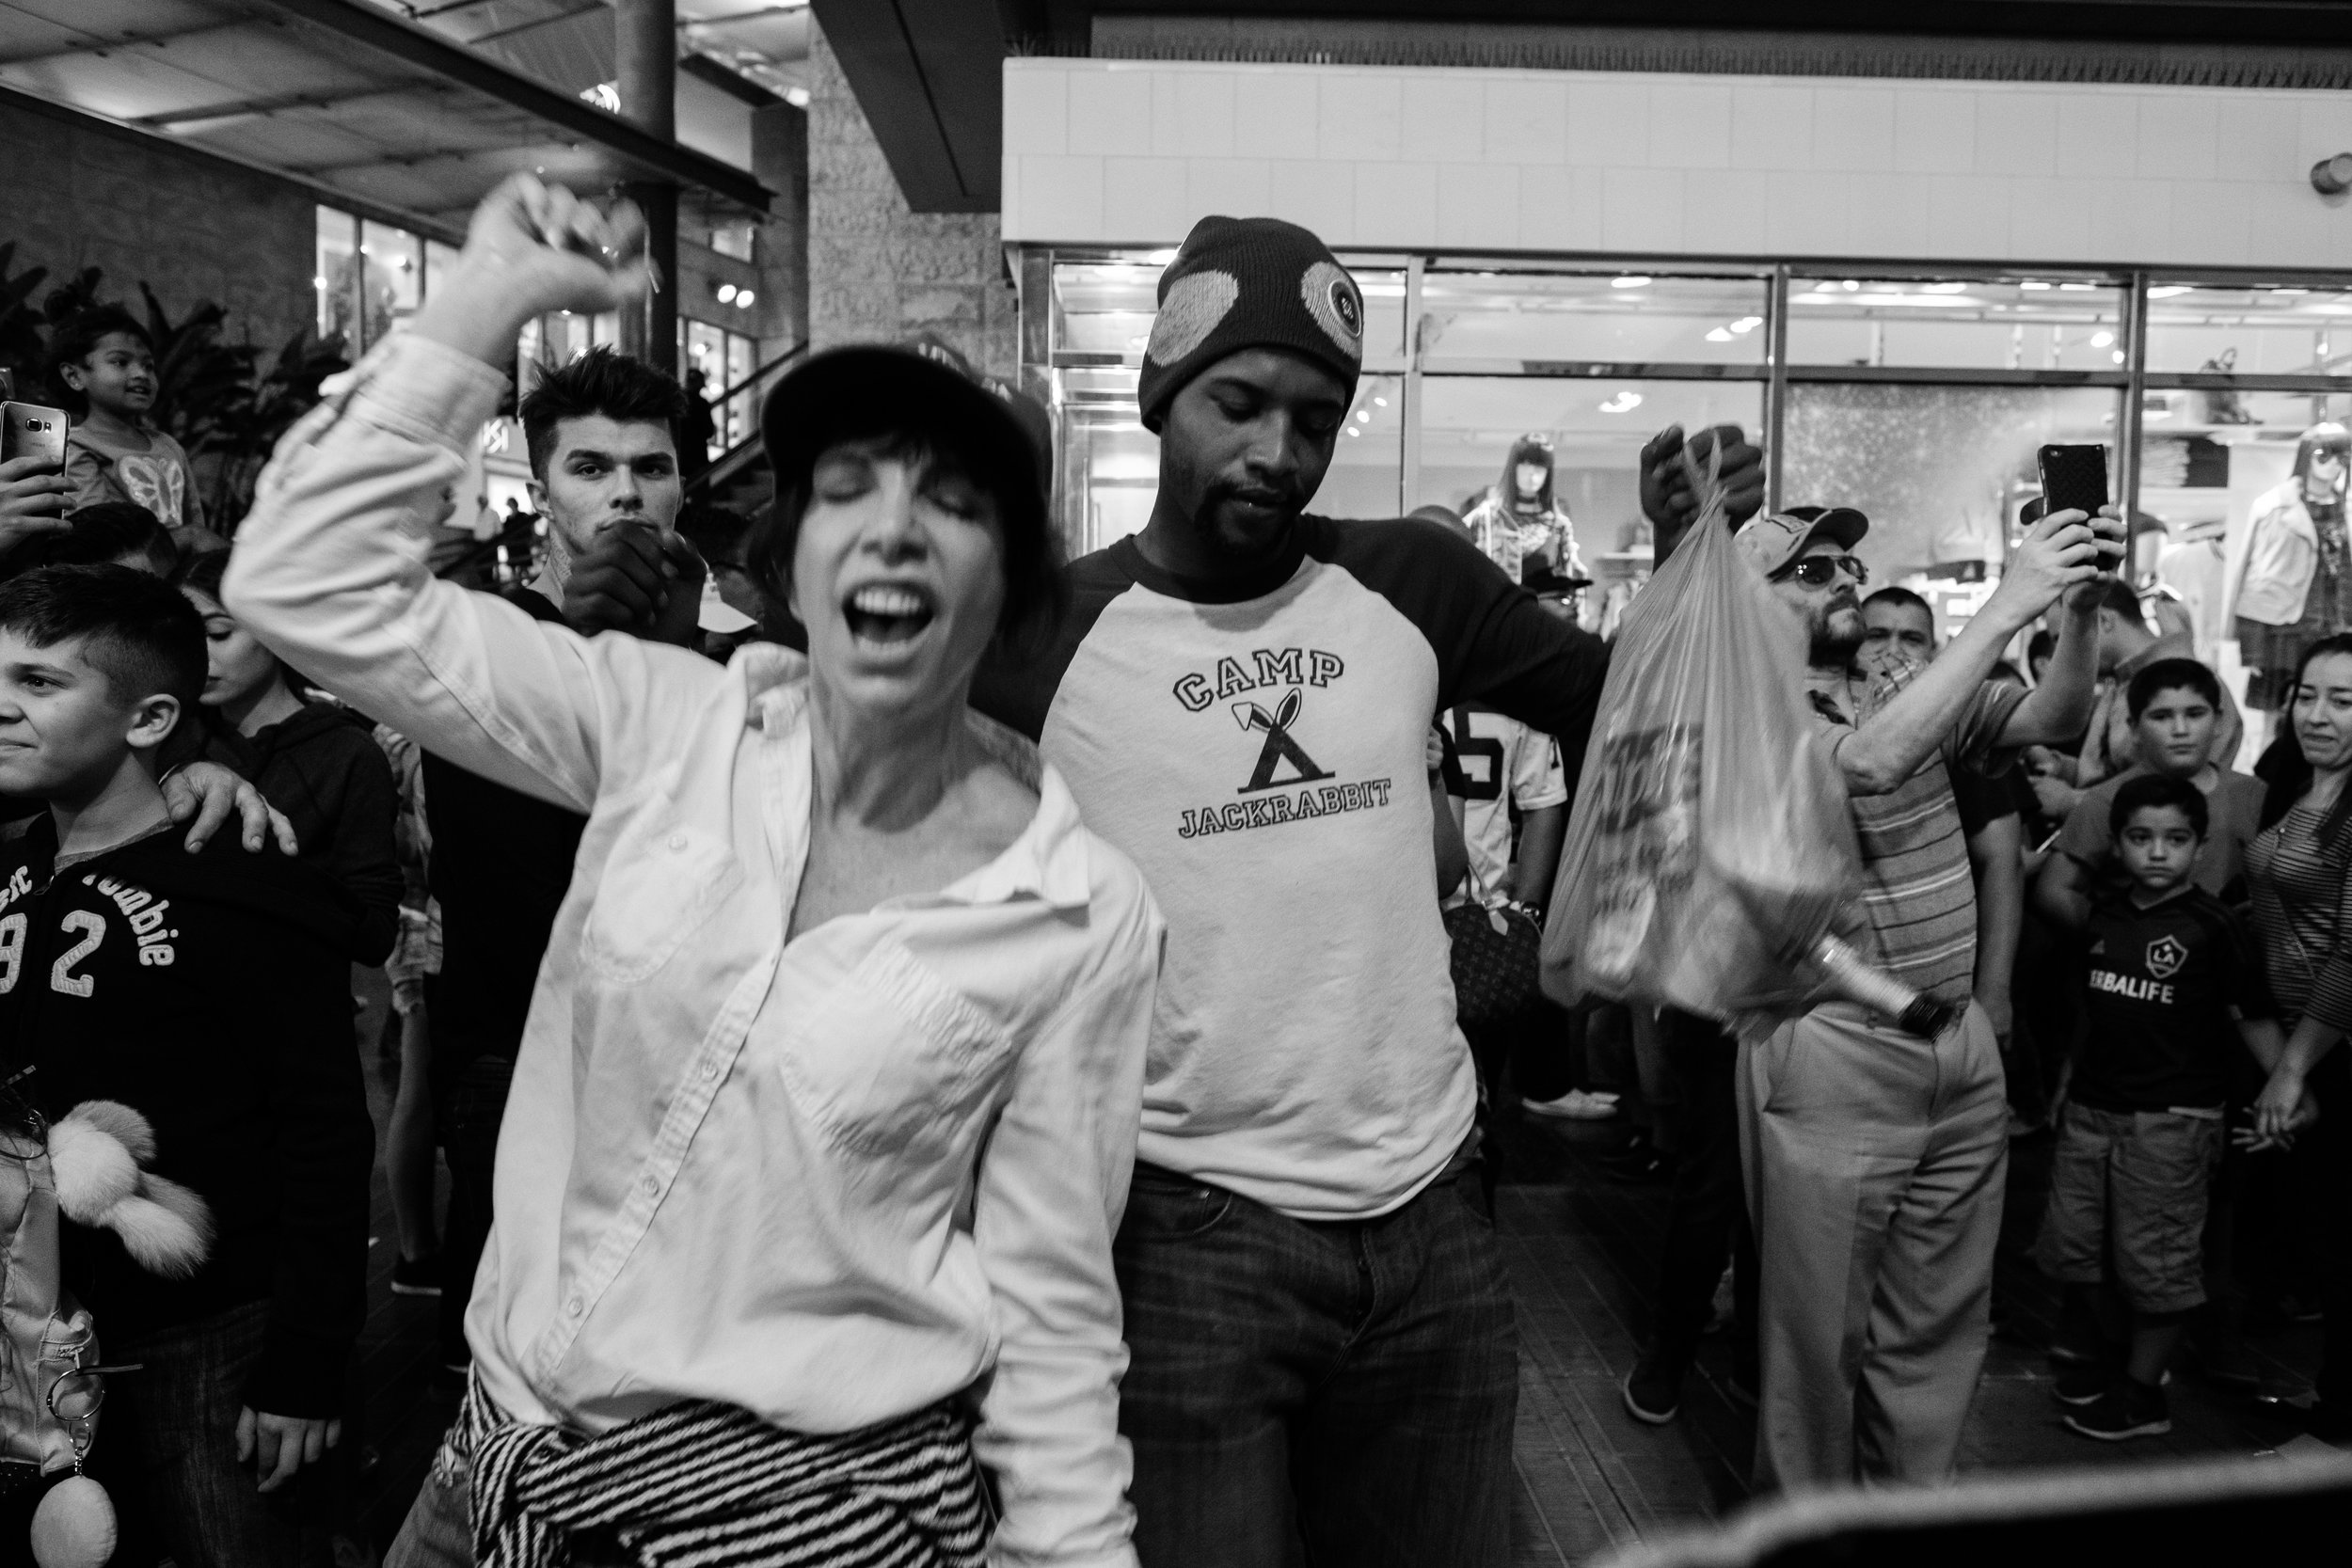 This Trump supporter and a gentleman who vocally opposed her just moments prior shared a mutual appreciation for music and dance, followed by a few laughs and what almost looked like a veiled understanding of one another.